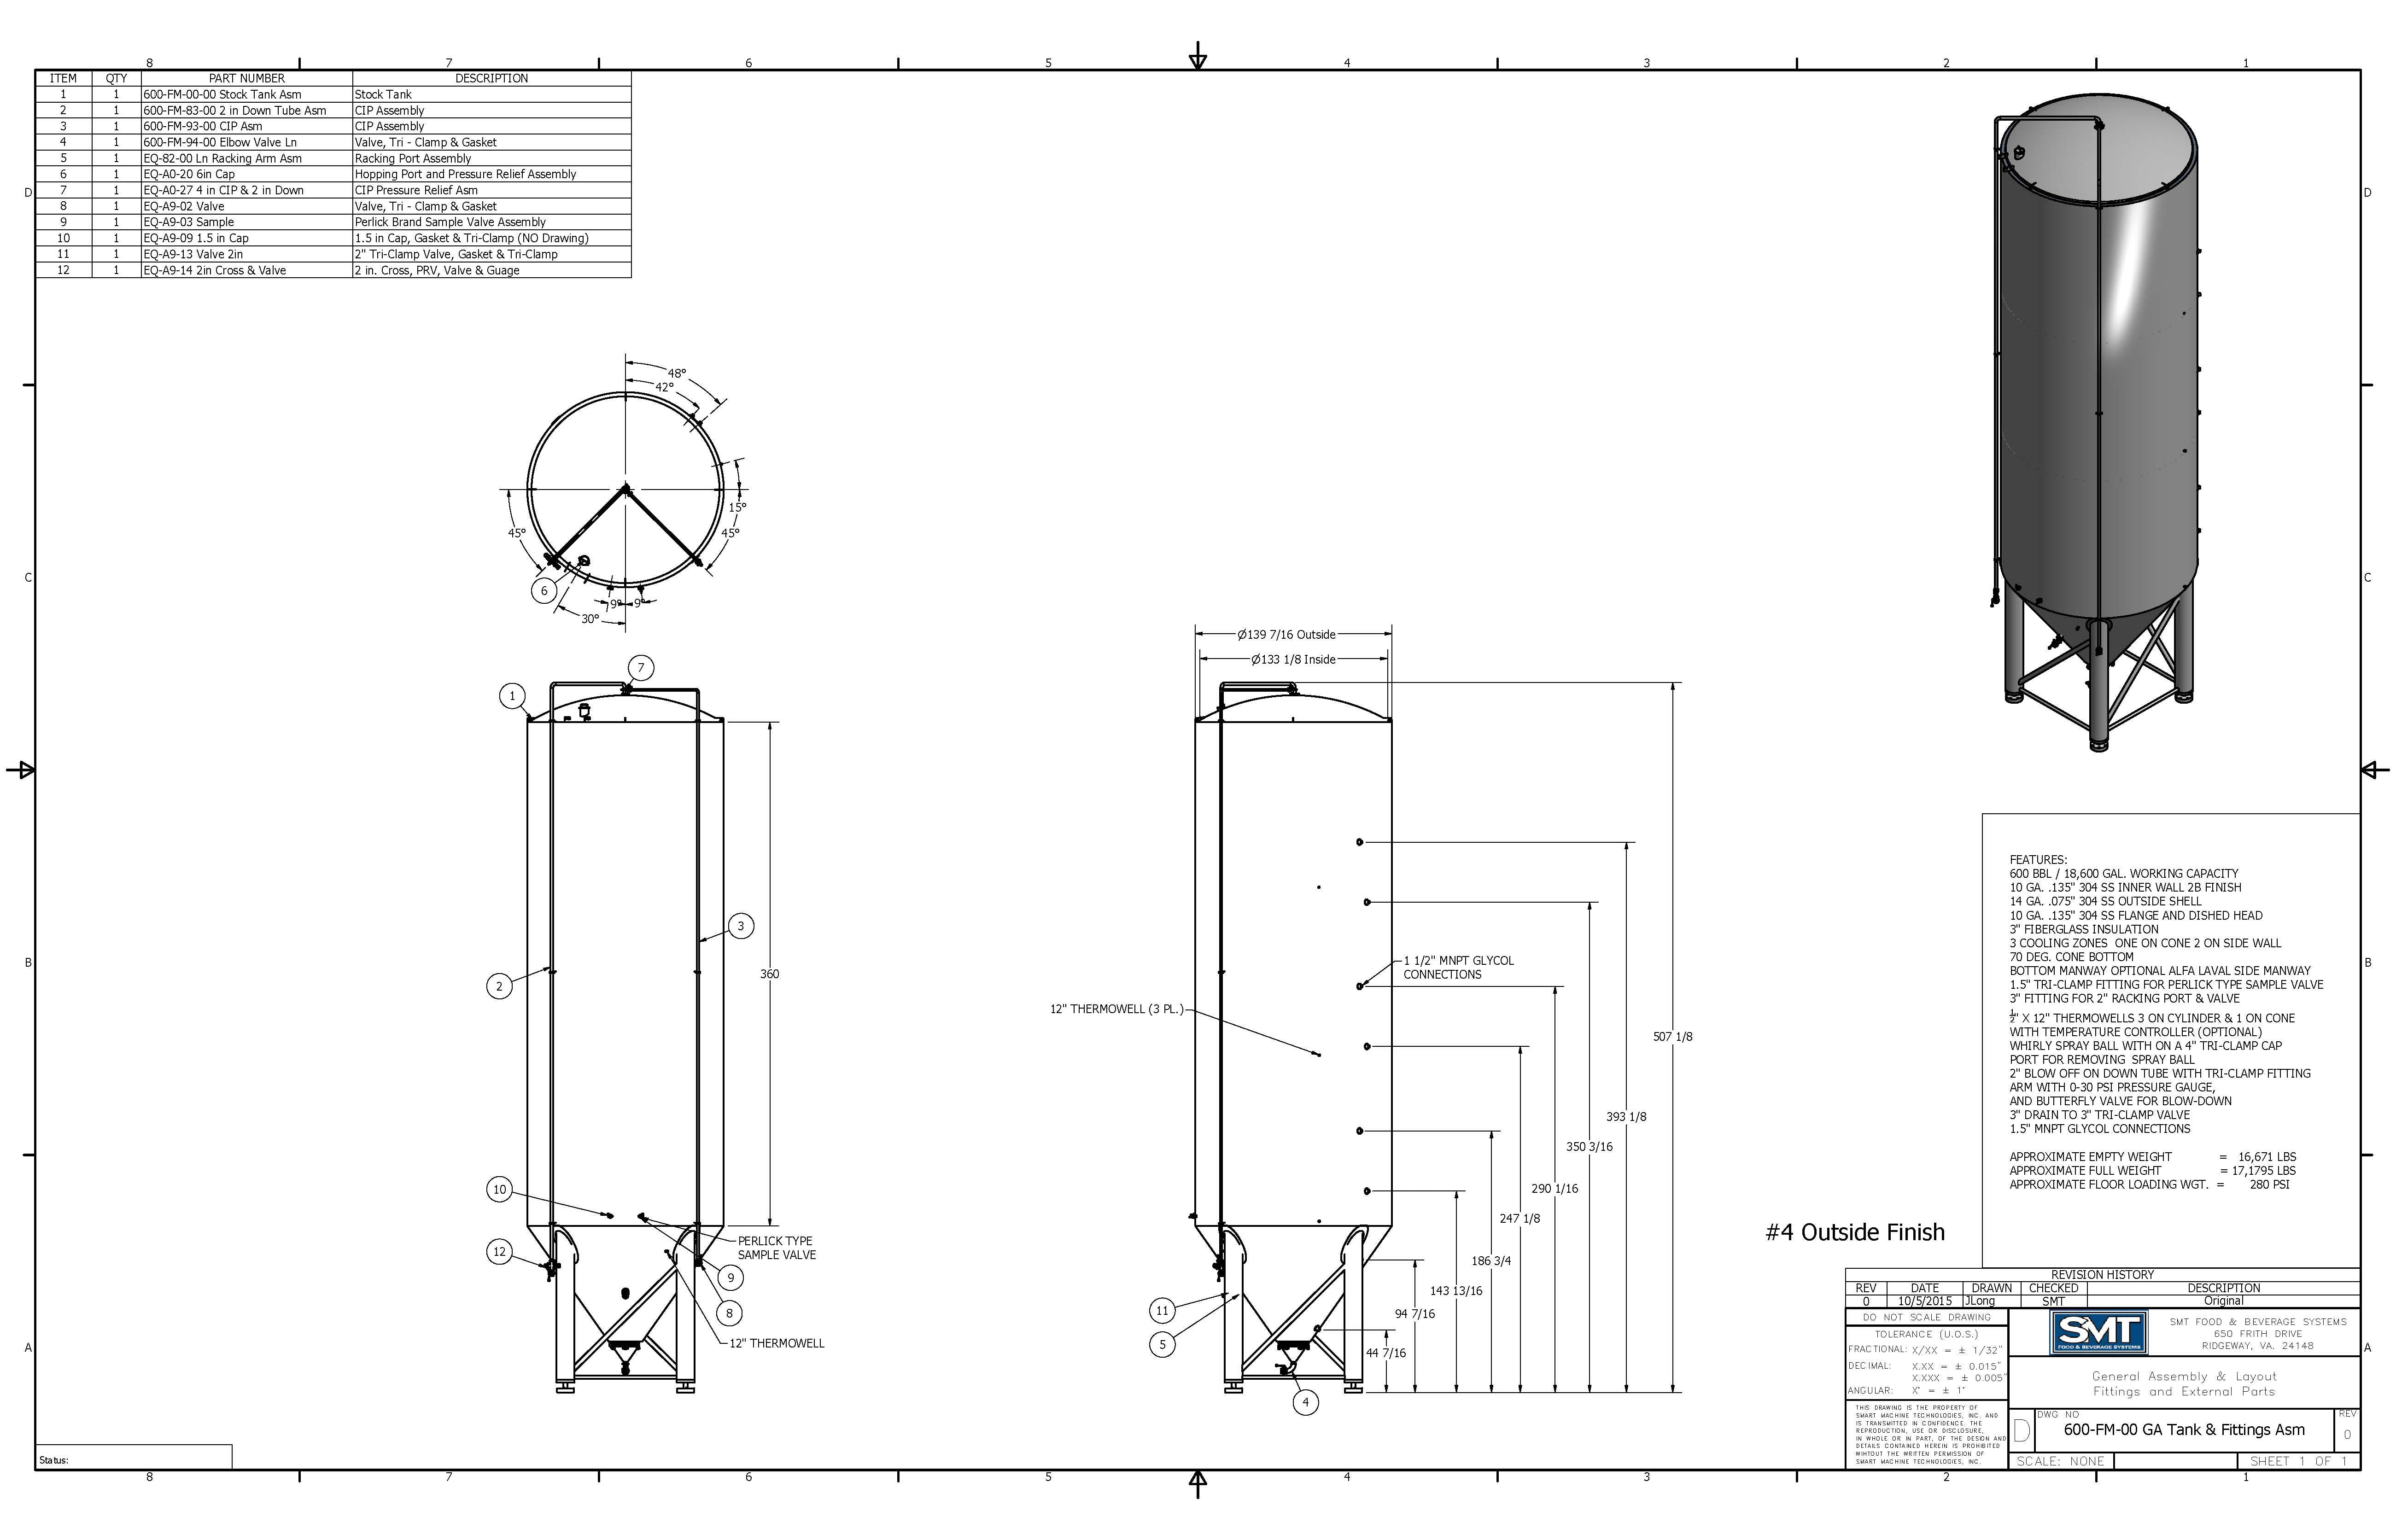 SMT FV General Assemblies Fermenter sold by Smart Machine Technologies, Inc